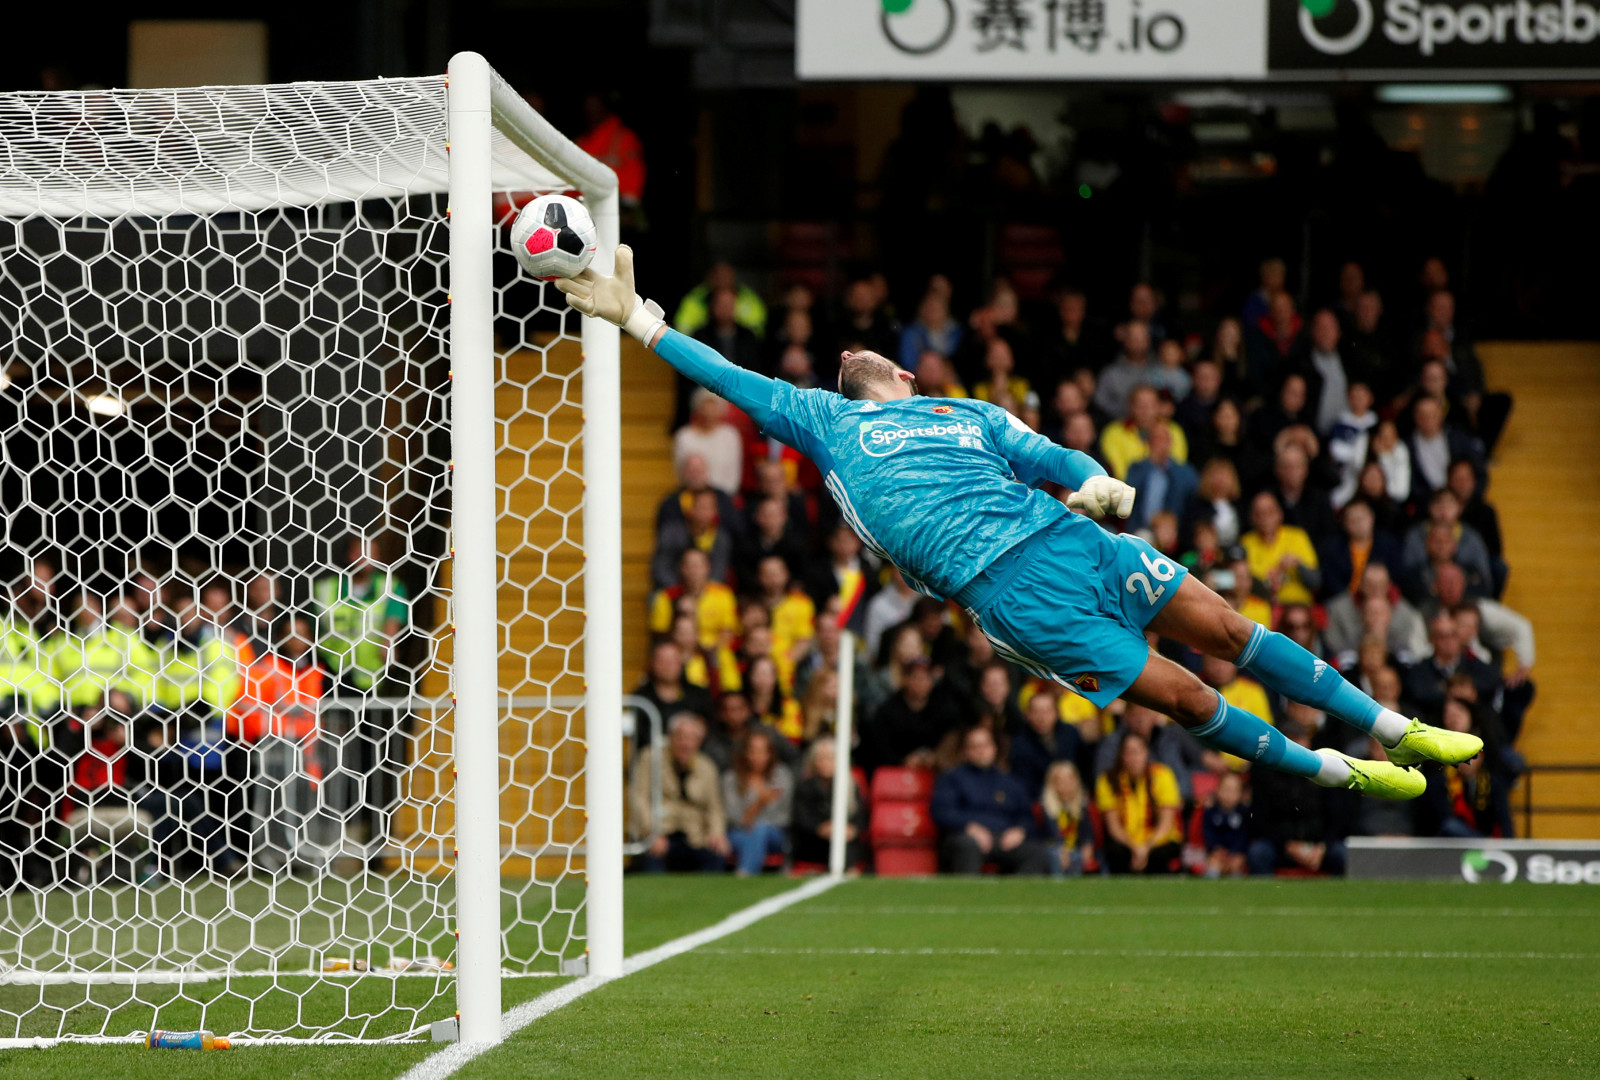 Watford's Ben Foster makes a save (optimized)